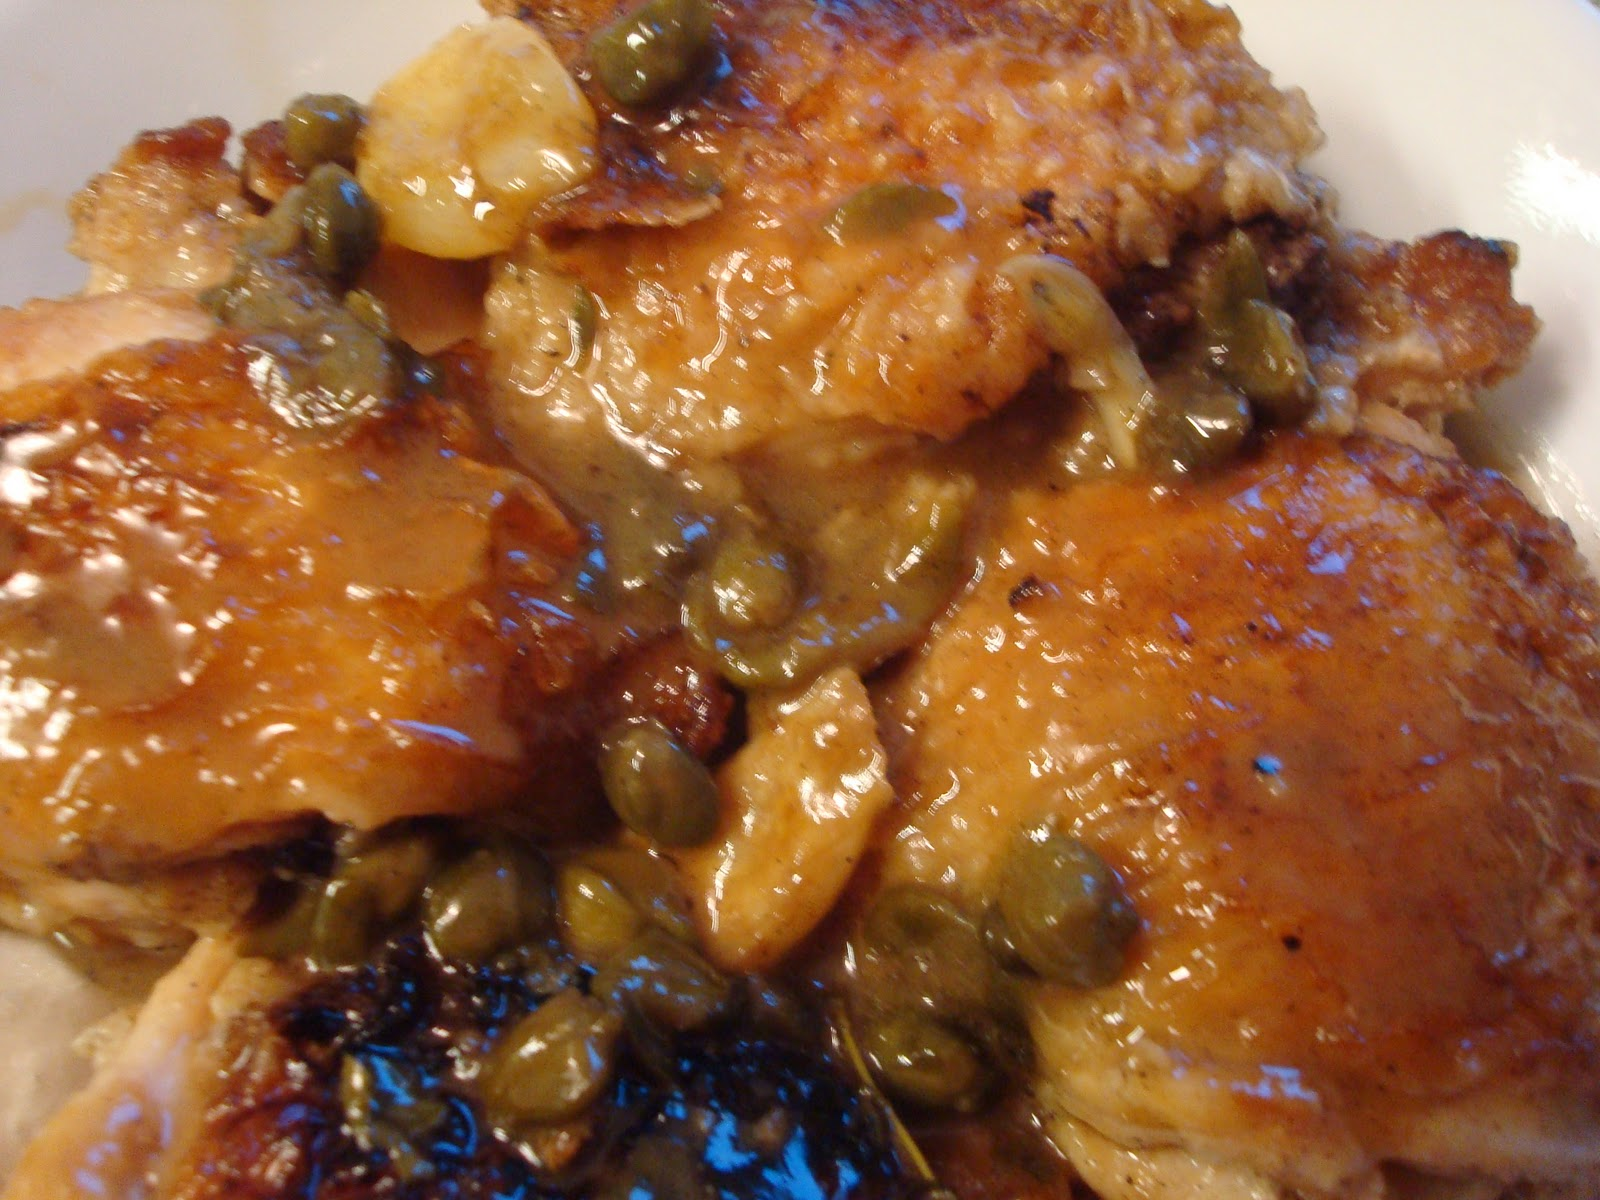 Schnitzel and the Trout: Braised Chicken with Lemon and Capers